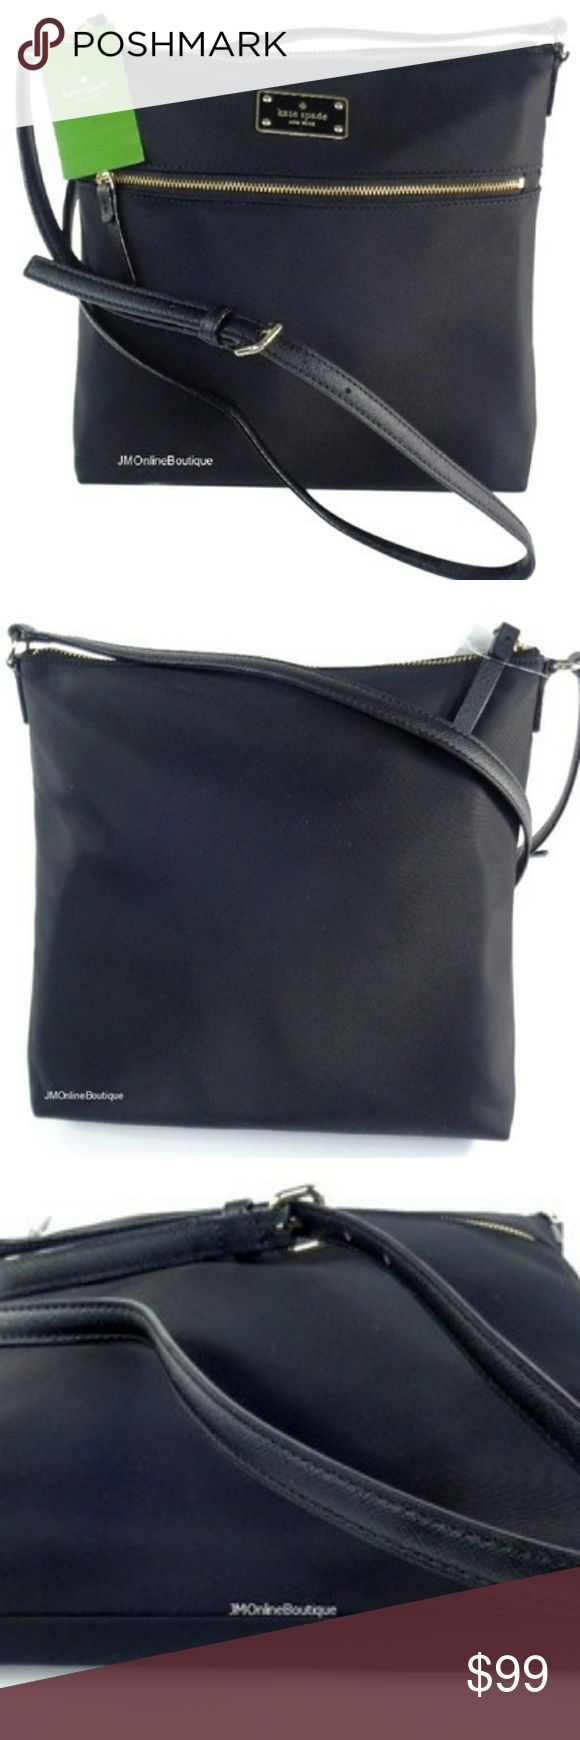 "KATE SPADE Crossbody Shoulder Purse DESCRIPTION  100% AUTHENTIC! NEW WITH TAGS! Kate Spade Women's Black Keisha Blake Avenue Nylon Crossbody/Shoulder Purse Measurement Approx. - 10.5"" (L) X 10.5"" (H) X 2.5"" (W) Adjustable Leather Strap Measurement Approx. - 18"" to 24"" Black Spades Nylon with Patent Leather Tri… mor kate spade Bags Crossbody Bags"